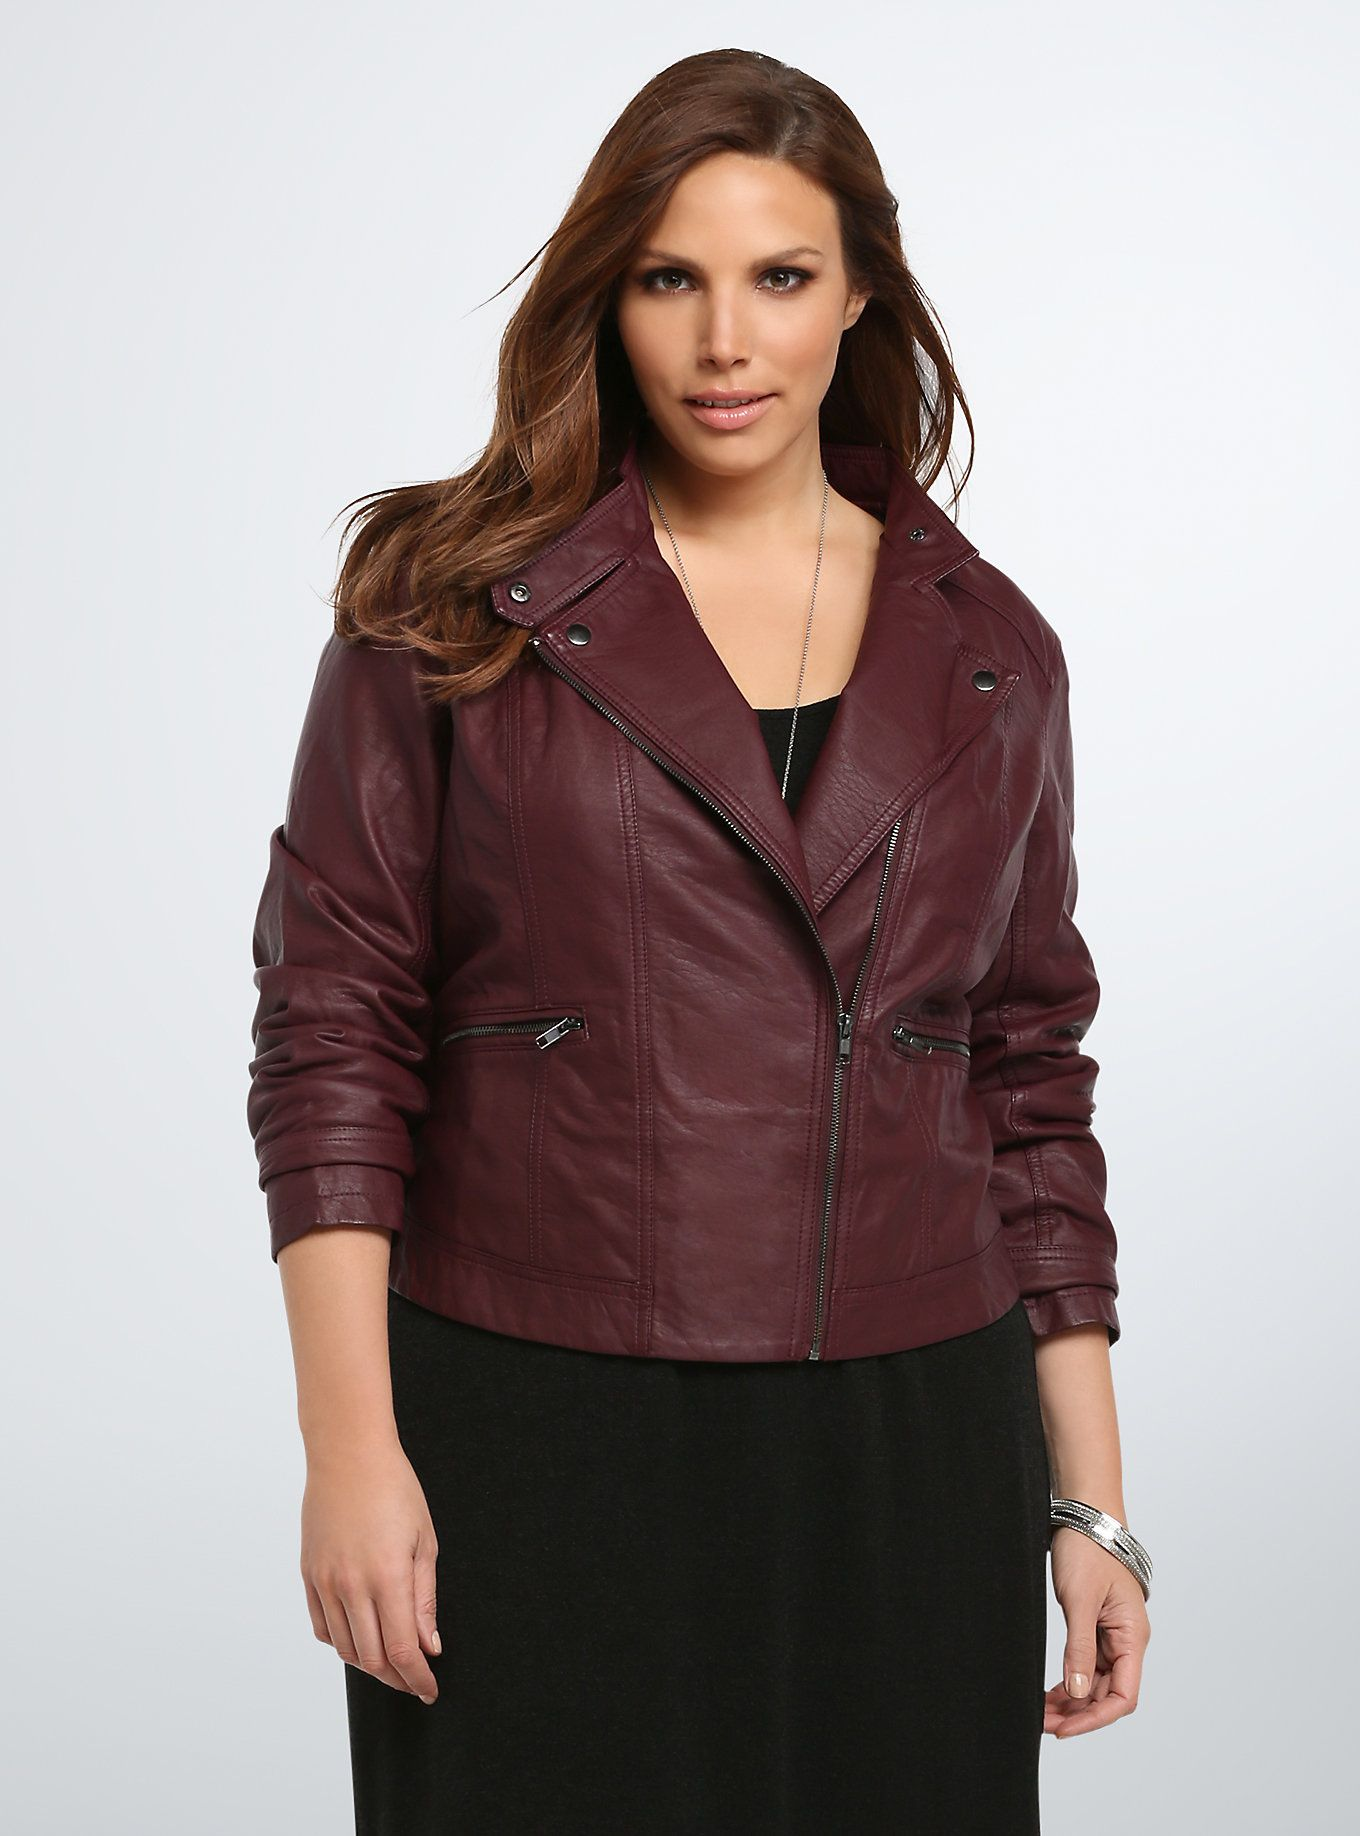 Faux Leather Seamed Moto Jacket Leather jacket outfits